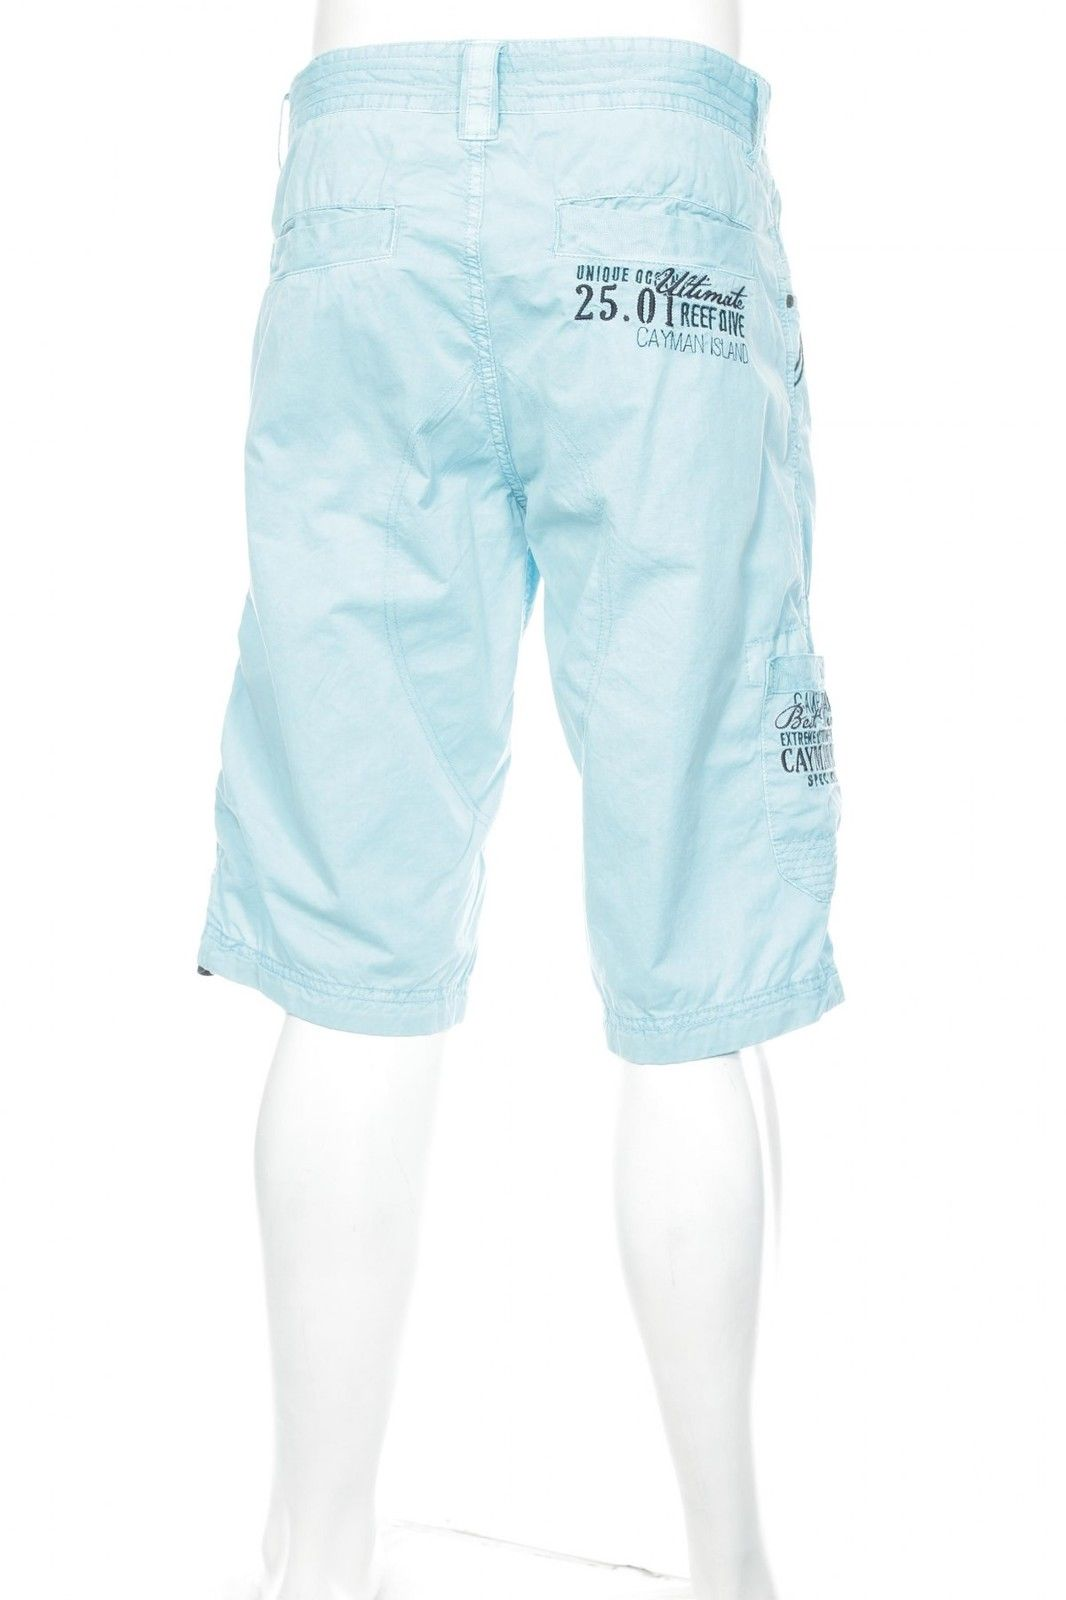 neueste Kollektion wie kauft man echte Schuhe Camp David Herren Pants Short Bermudas Blue sold by xperience